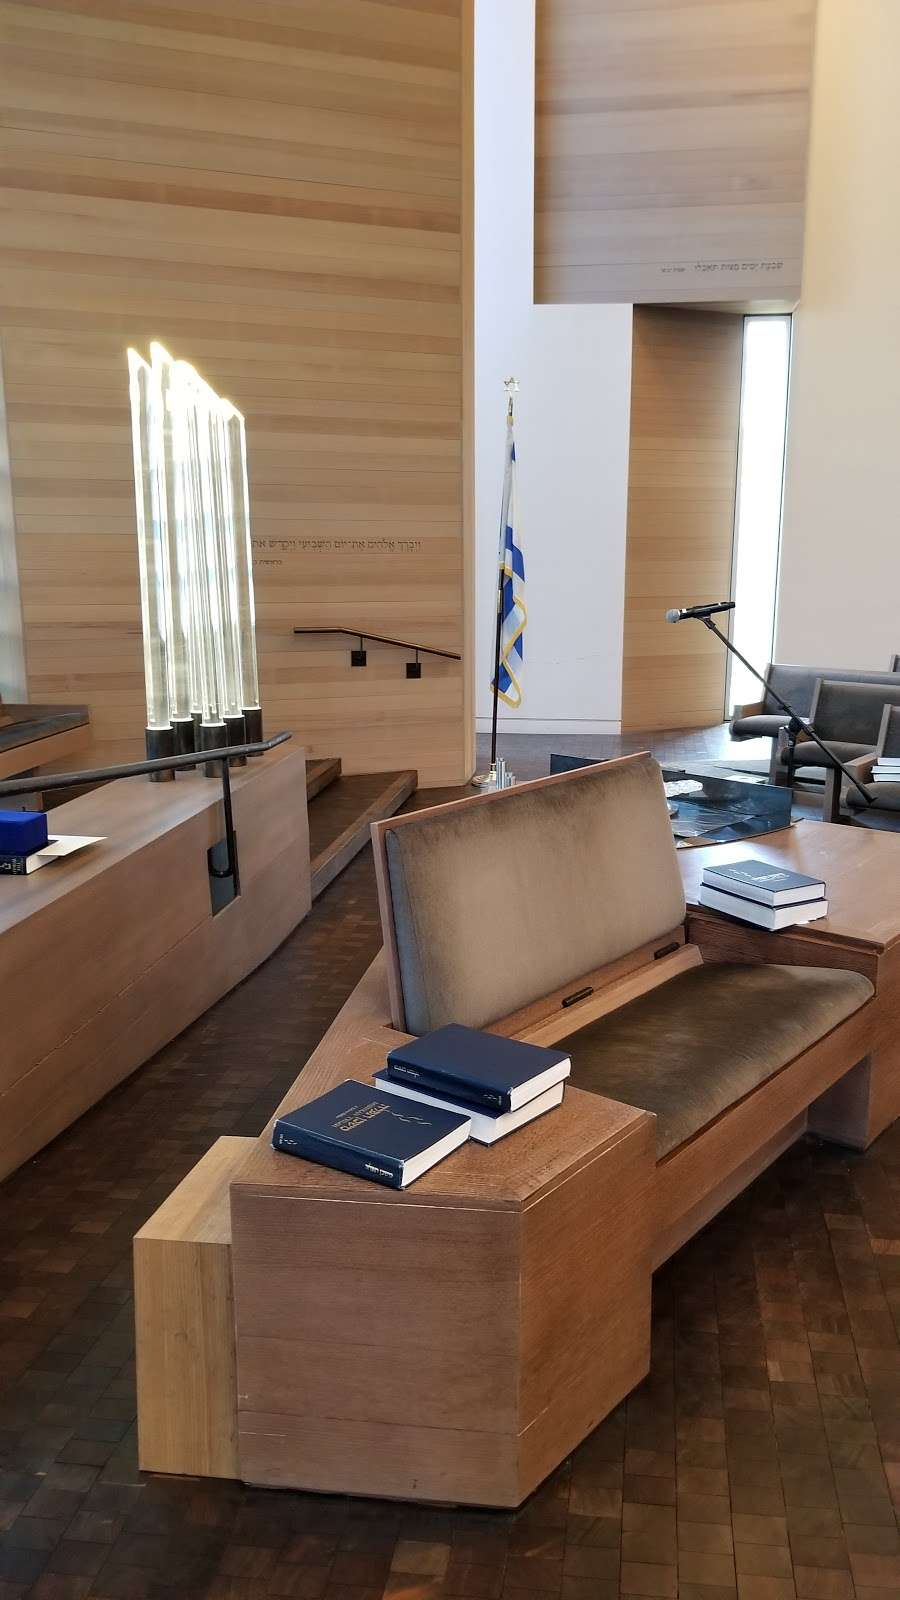 Westchester Reform Temple - synagogue    Photo 7 of 10   Address: 255 Mamaroneck Rd, Scarsdale, NY 10583, USA   Phone: (914) 723-7727